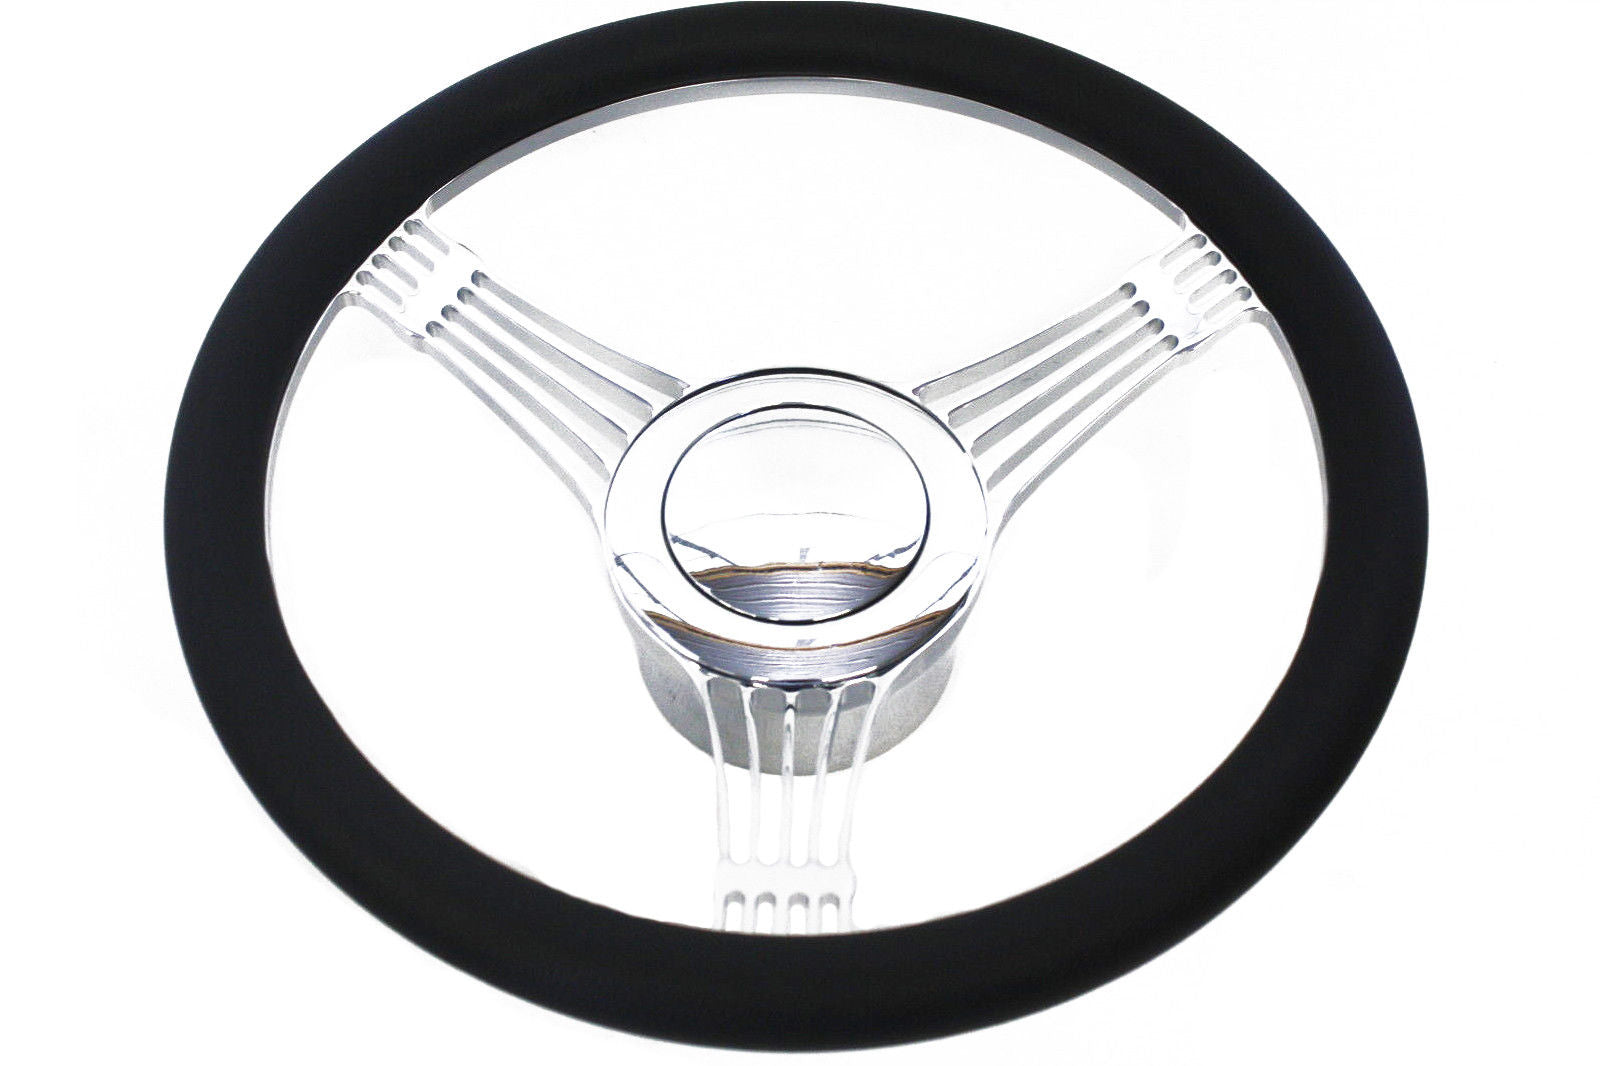 14 Billet Chrome Banjo Style Steering Wheel With Half Wrap Black Leather/&Horm Button